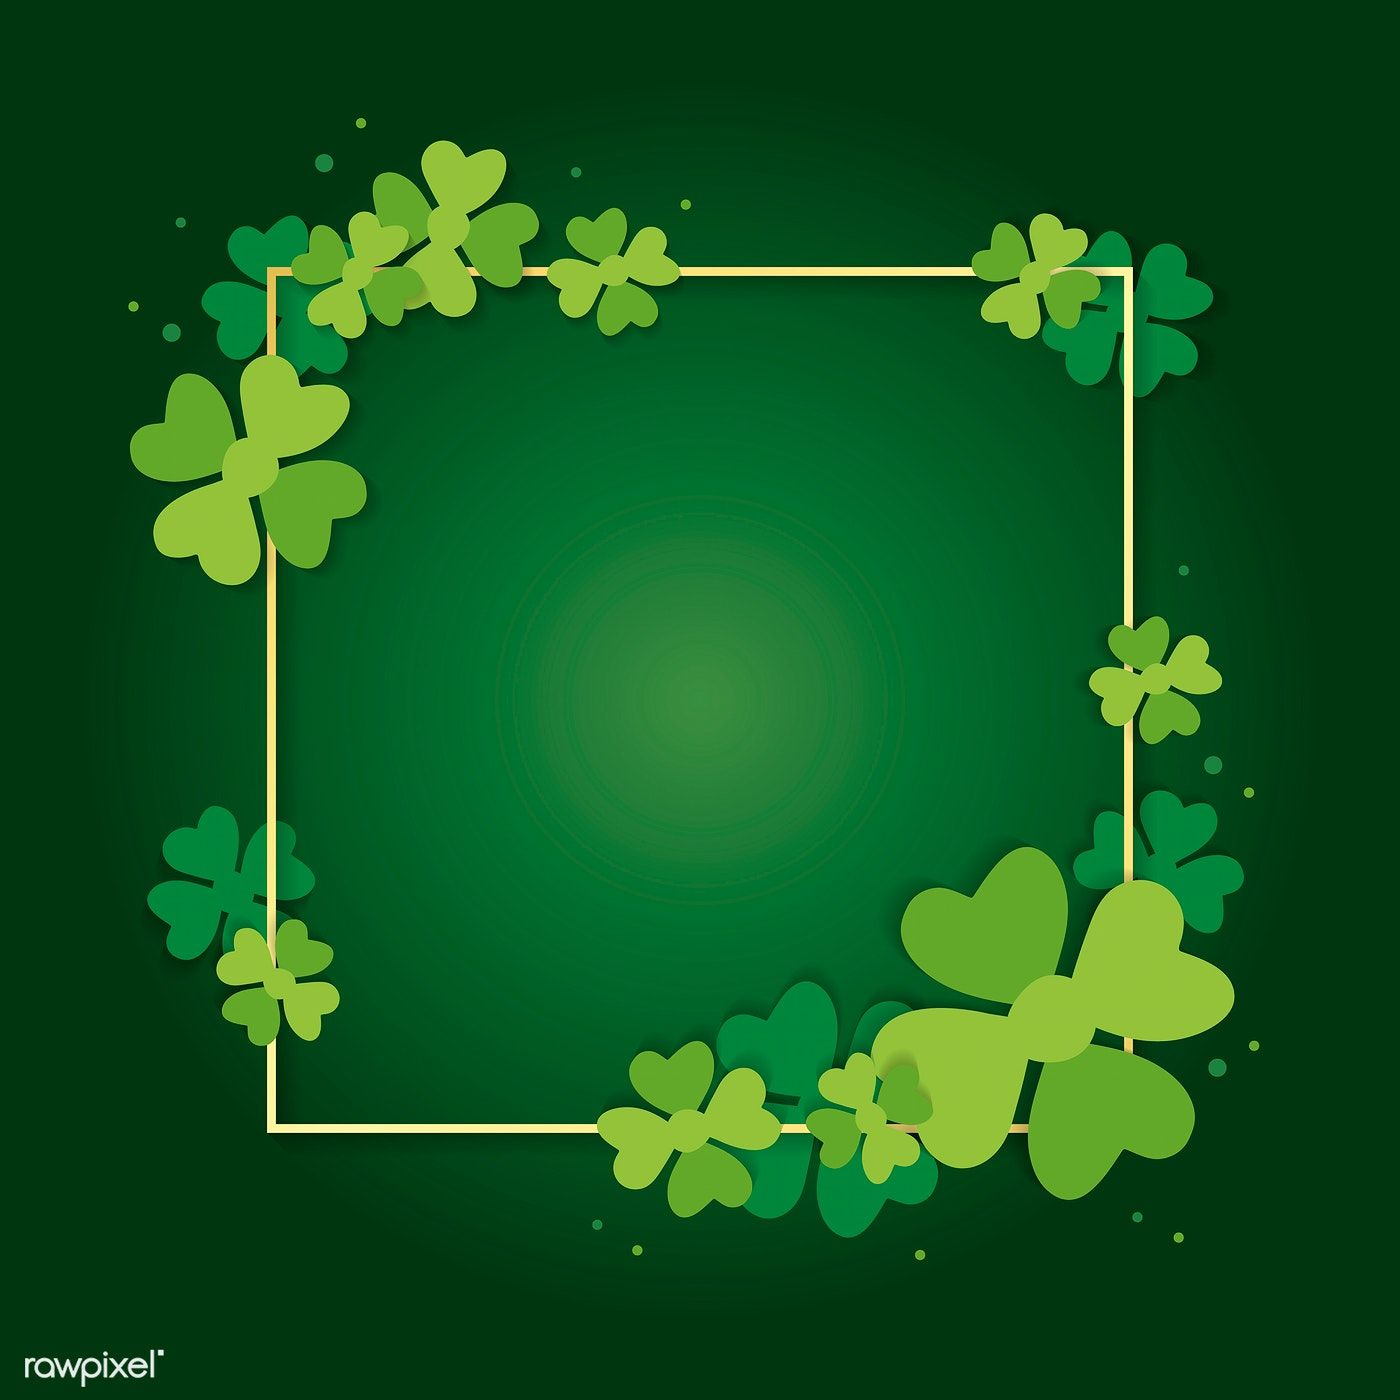 St Patrick S Day Blank Square Banner Vector Free Image By Rawpixel Com Ningzk V Banner Vector Flower Background Wallpaper Vector Free